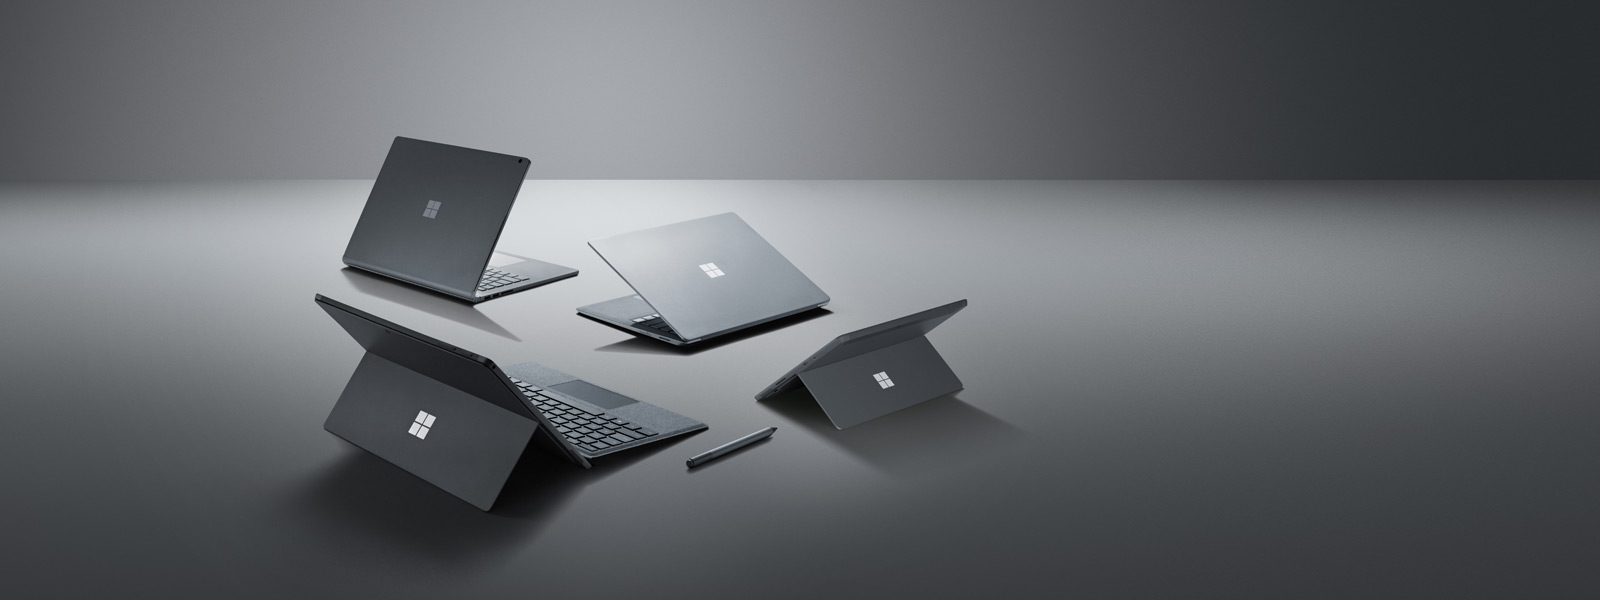 Surface Go, Surface Book 2, Platinum Surface Pro 6,Platinum Surface Laptop 2 and Surface Pen